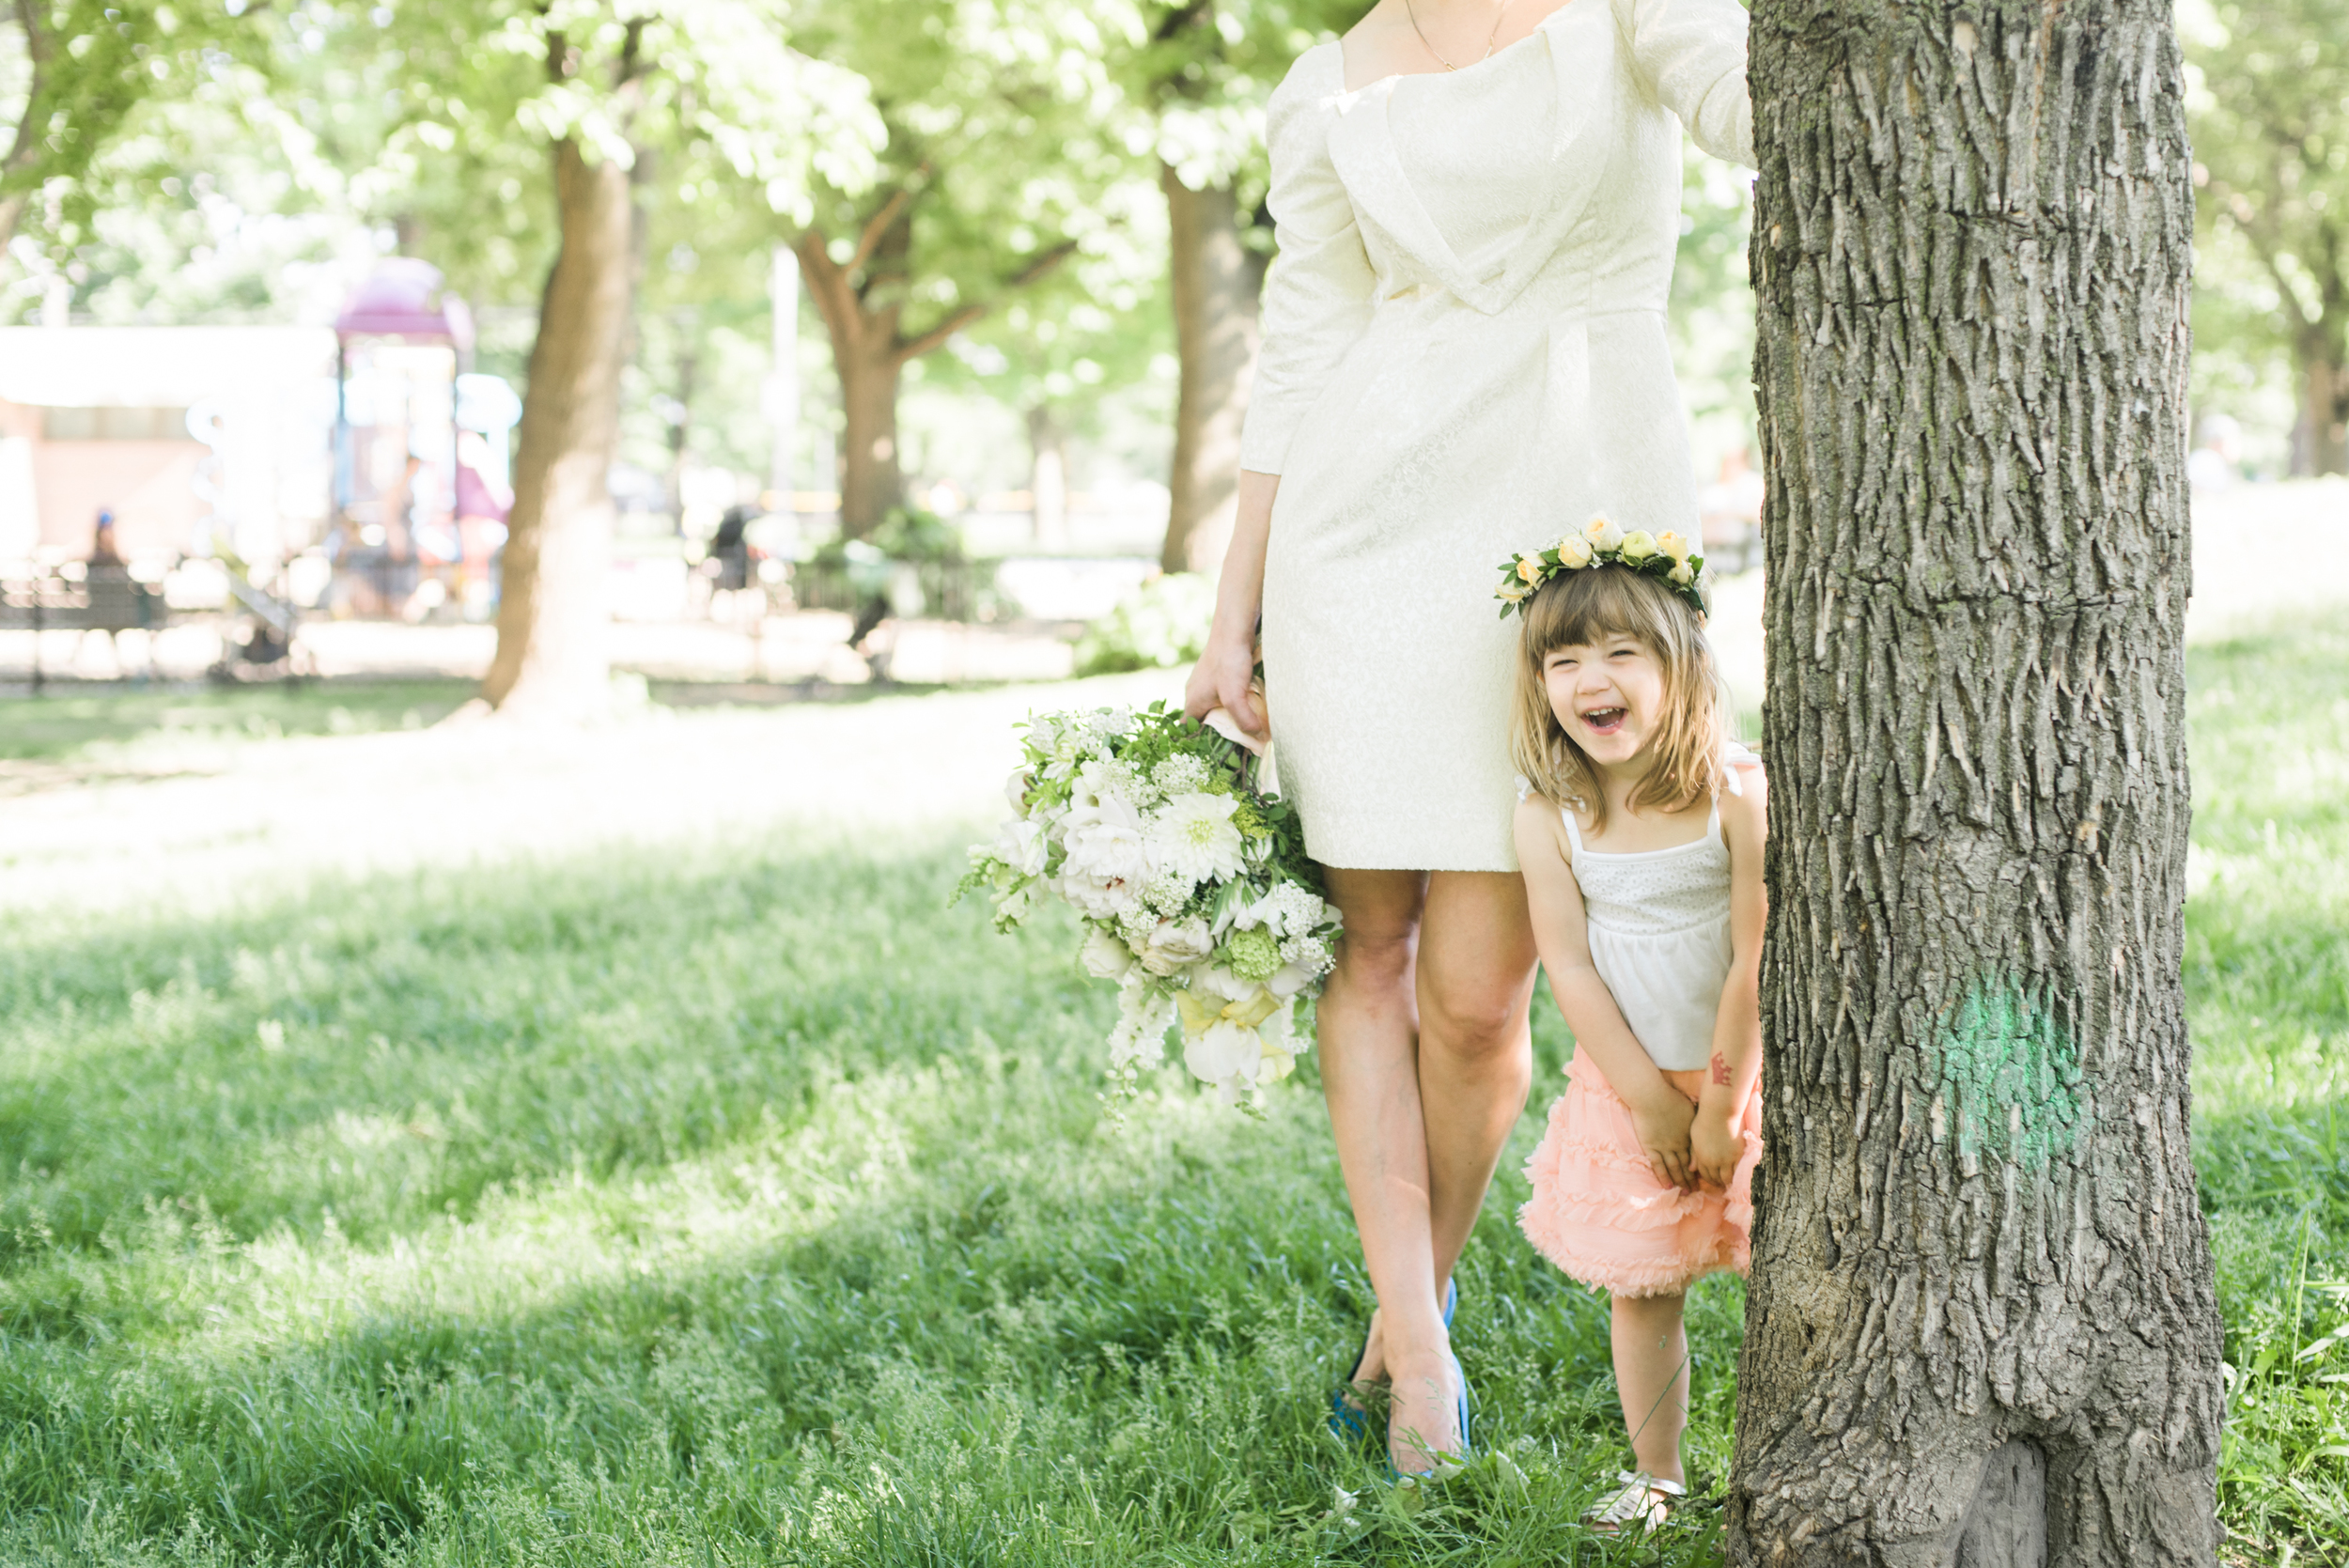 Flower girls can look just as cute in a casual summer outfit dressed up with a floral crown.